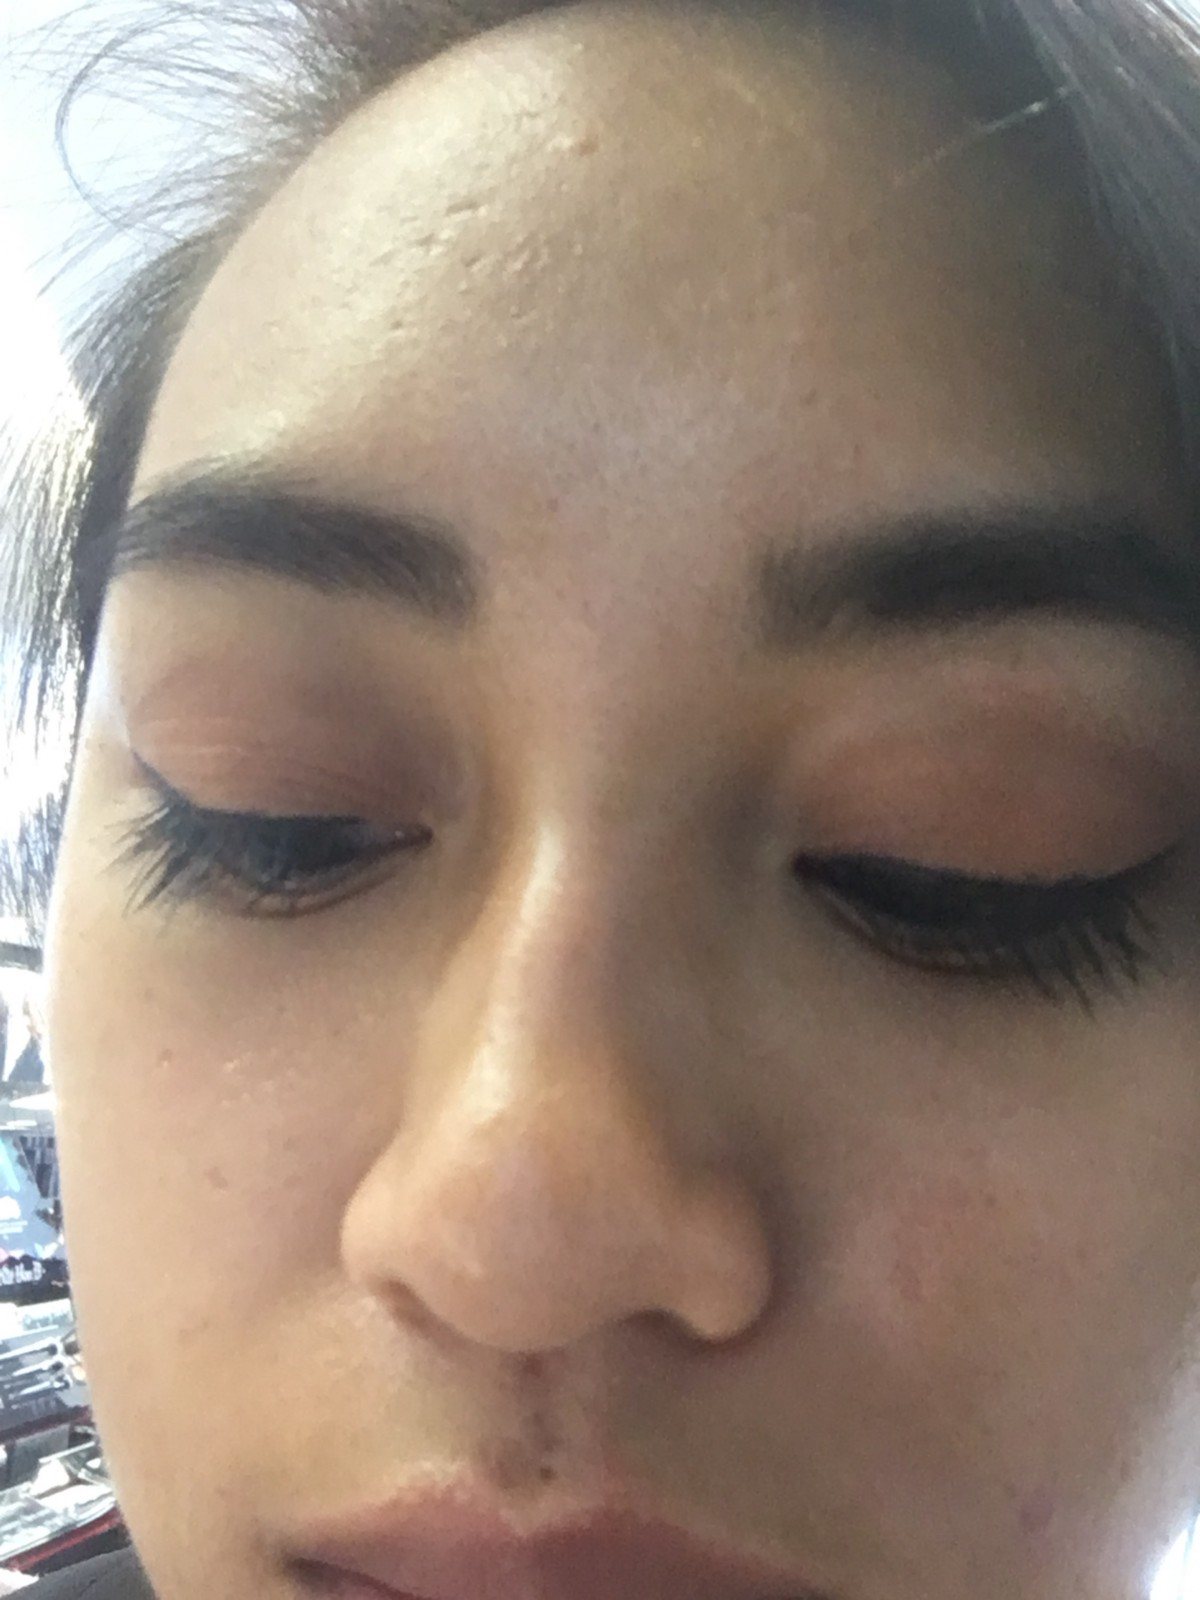 As said in Clueless, my eye makeup is a full-on Monet: From far away it's okay, but up close it's a big ol' mess.